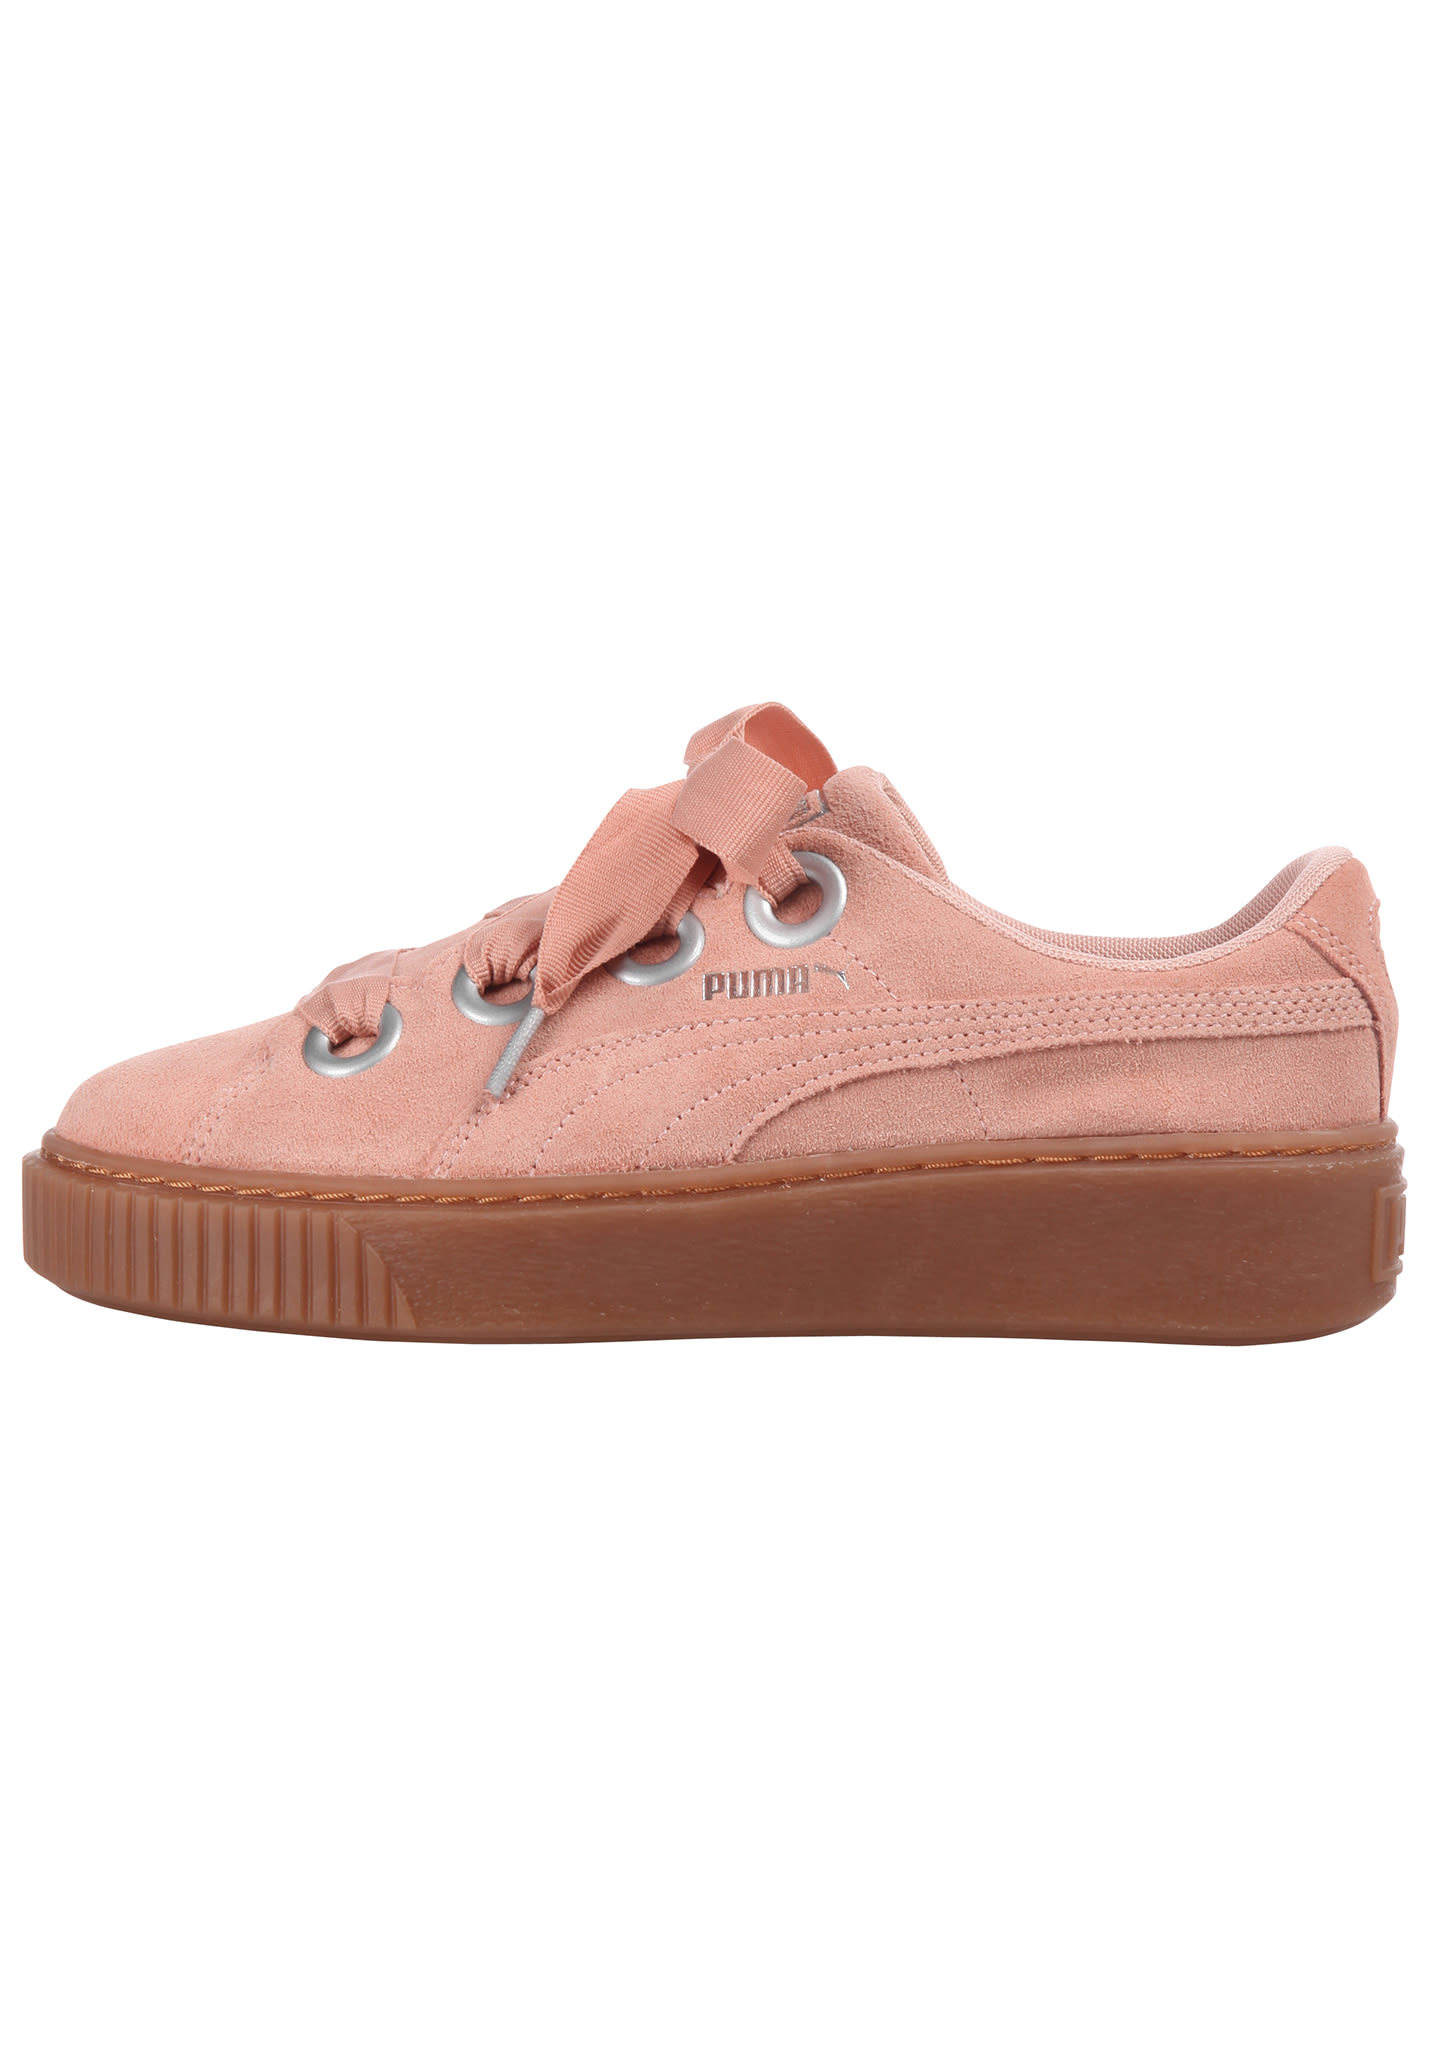 For Women Pink Platform Puma Kiss Sneakers Suede e9WHYED2I